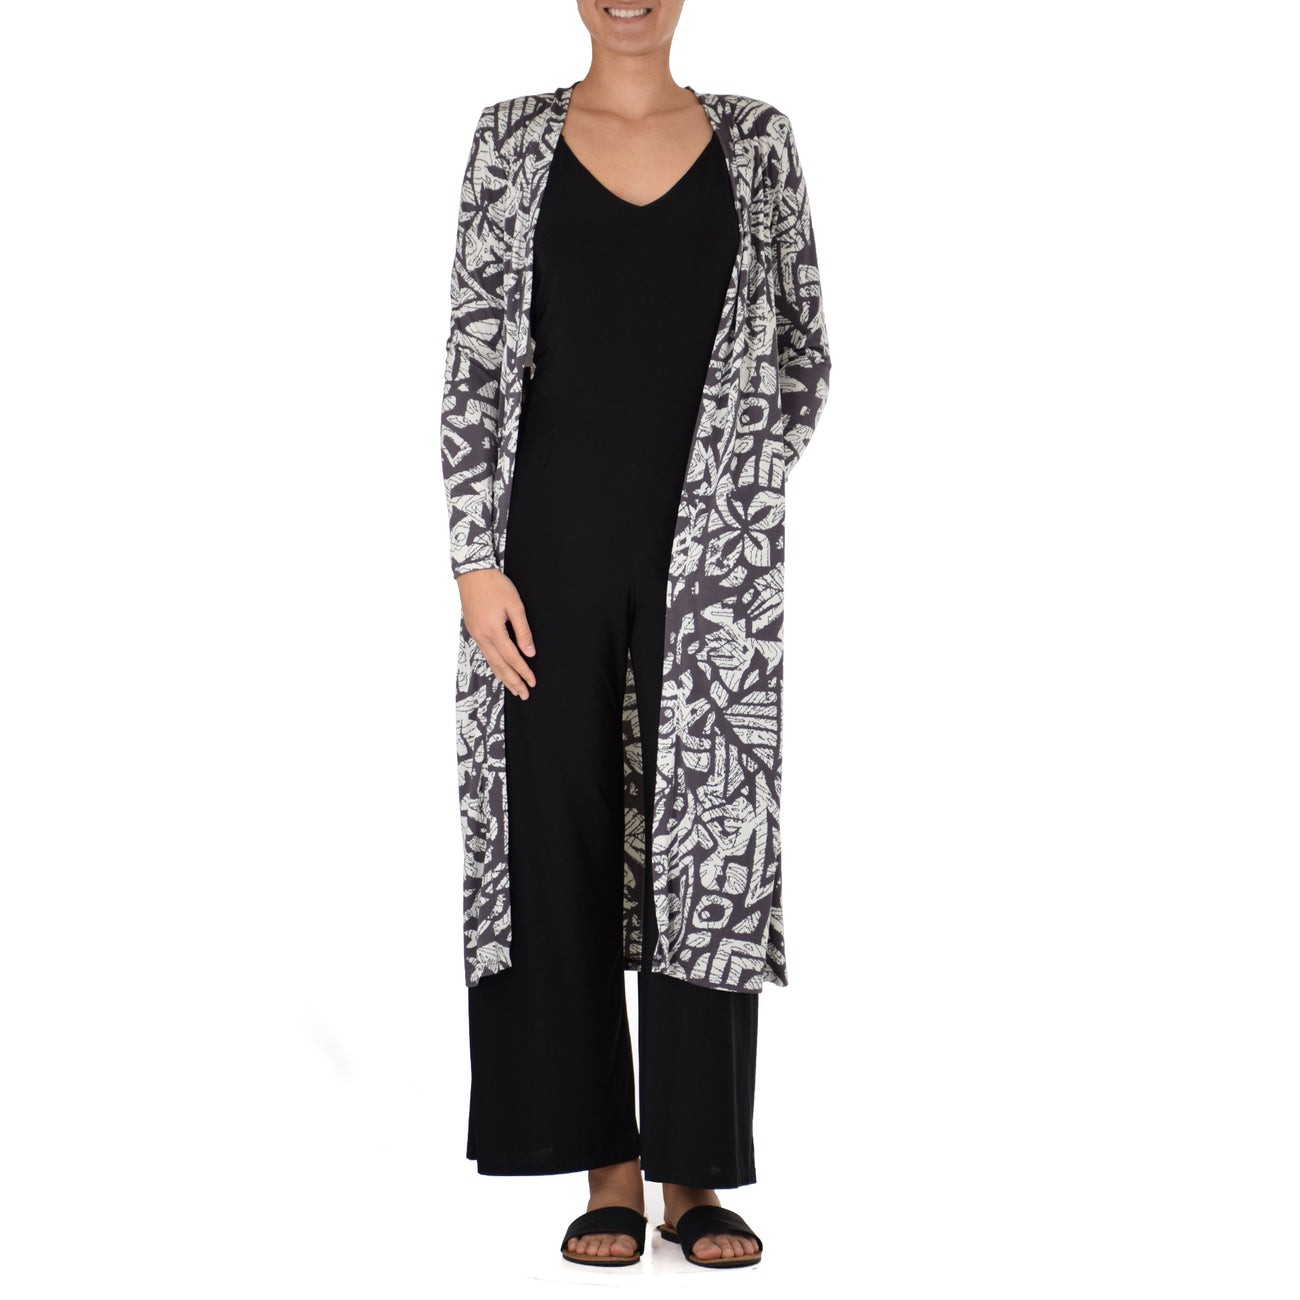 KAPA FLORAL LONG CARDIGAN